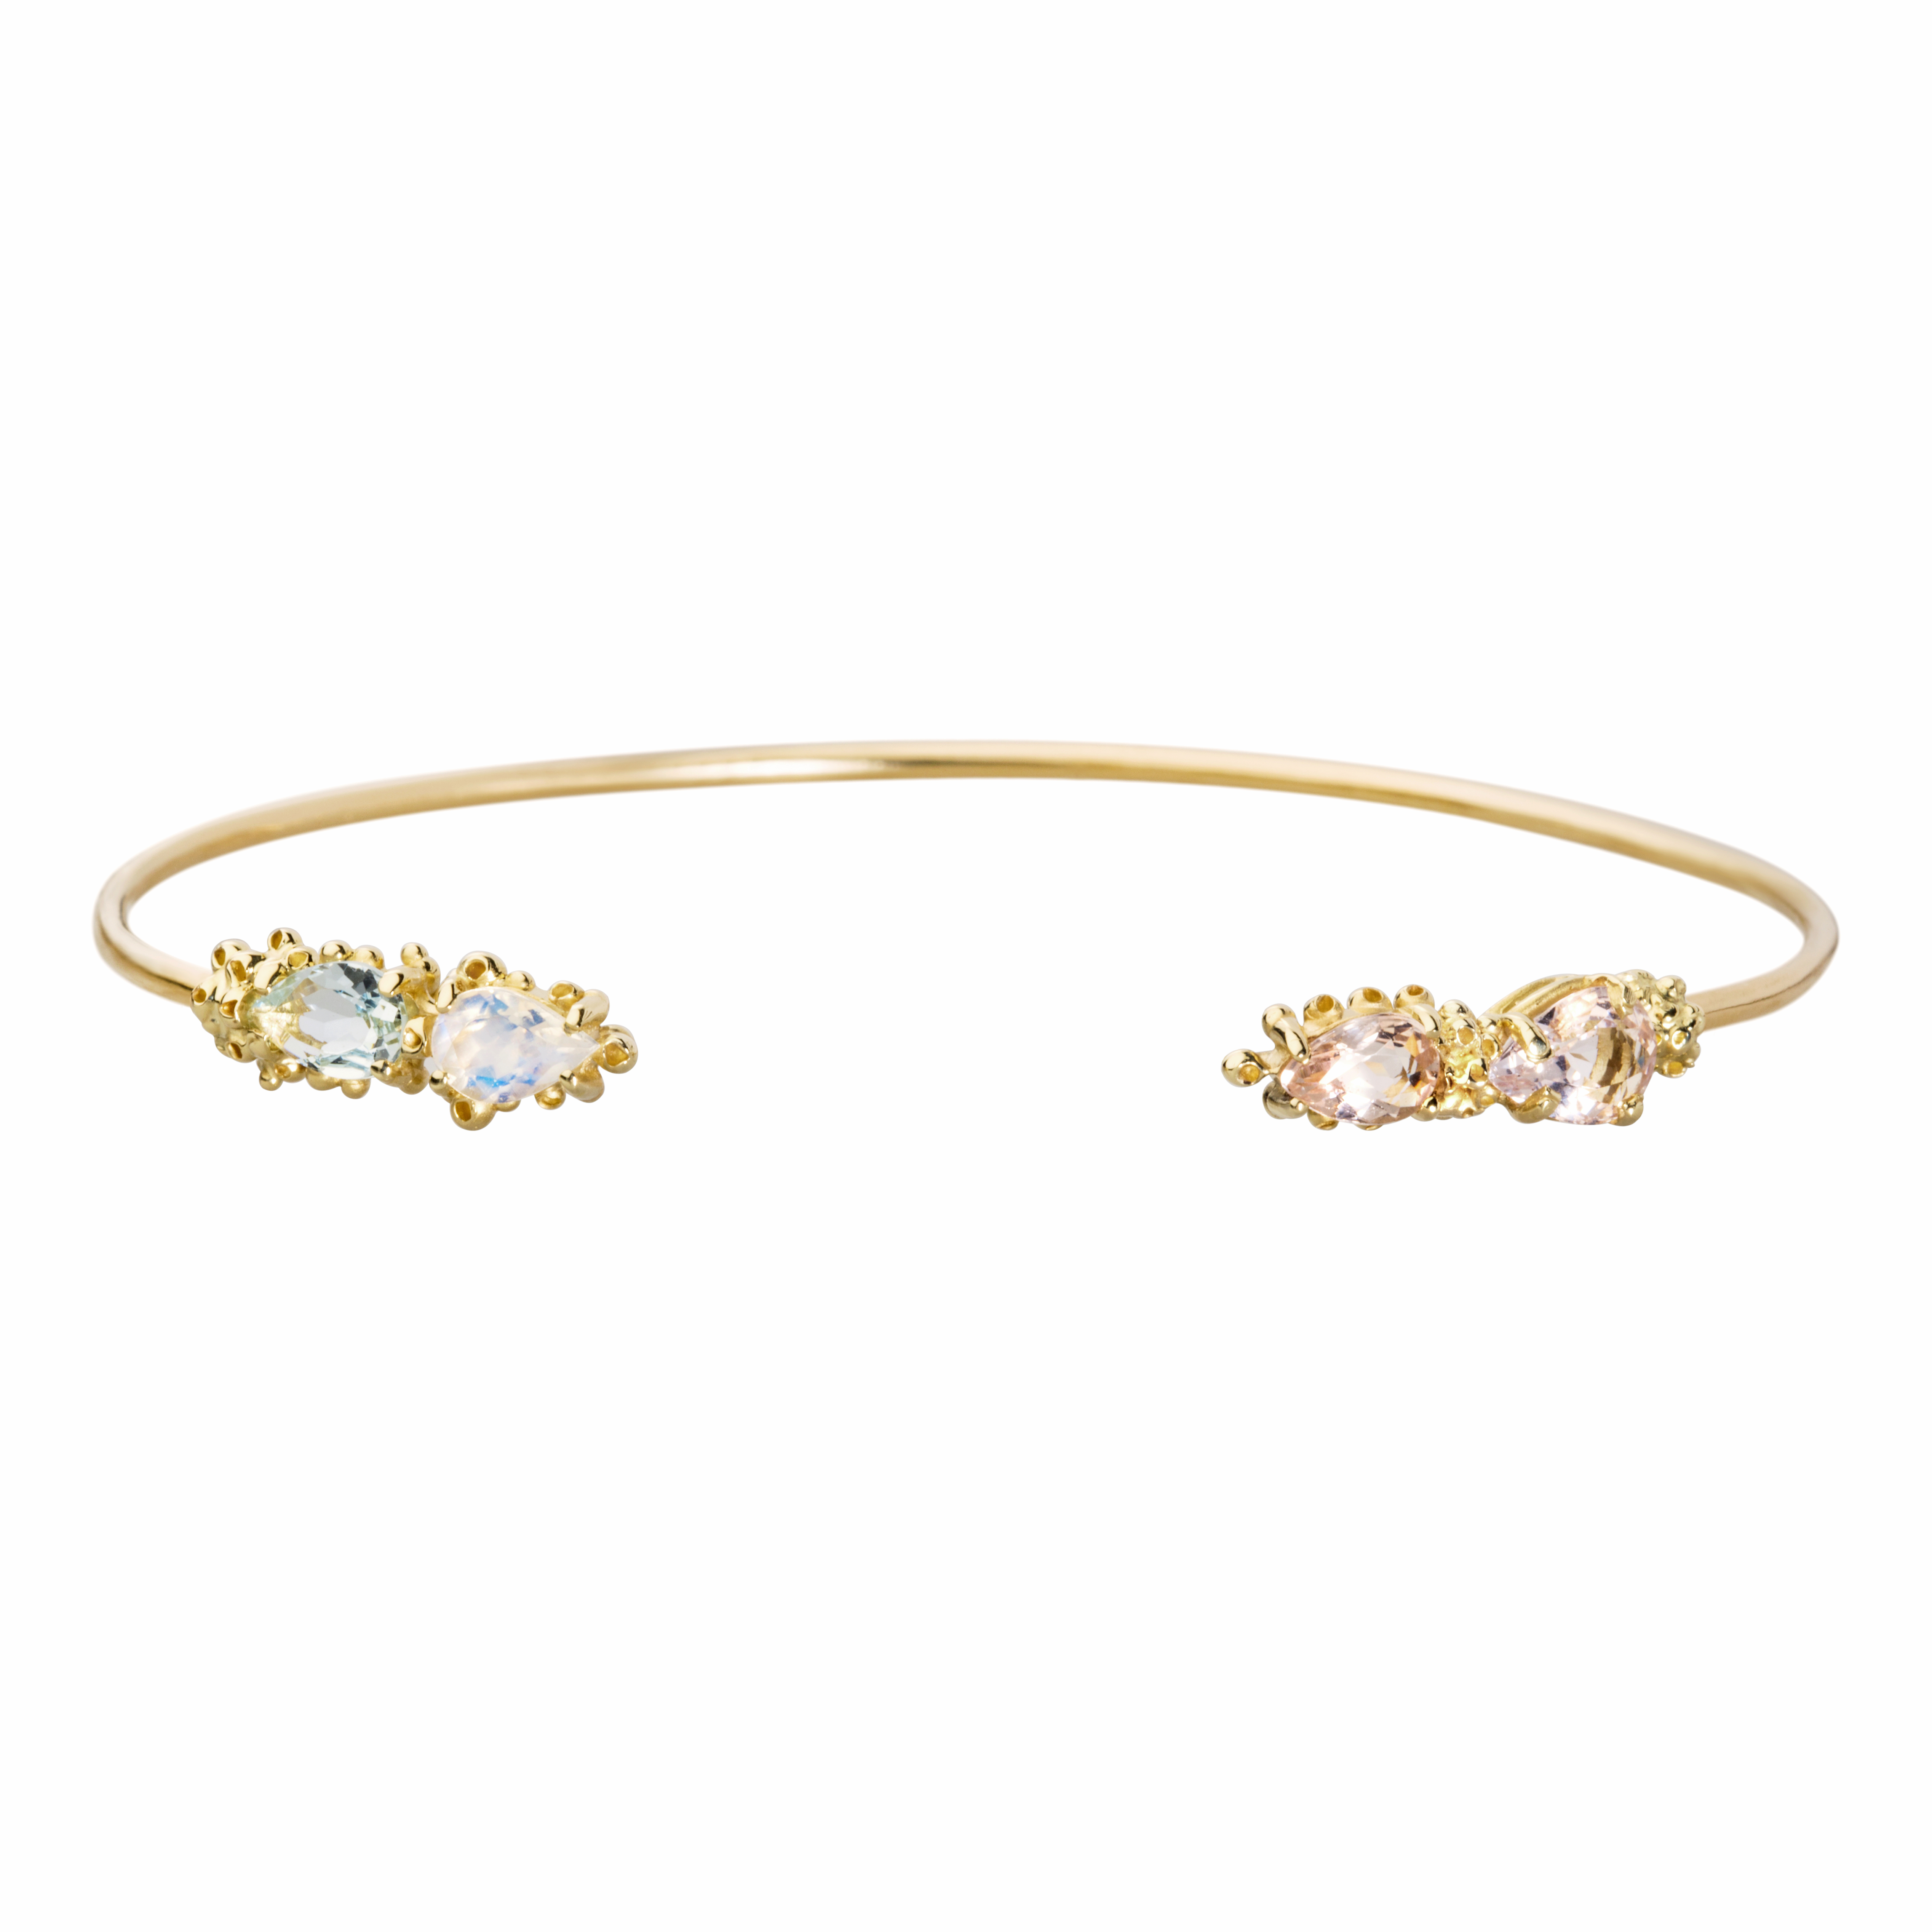 92b52aa69 Mini Throne Cuff with white topaz and pavé diamonds in 14k yellow gold,  $925; Anne Sisteron